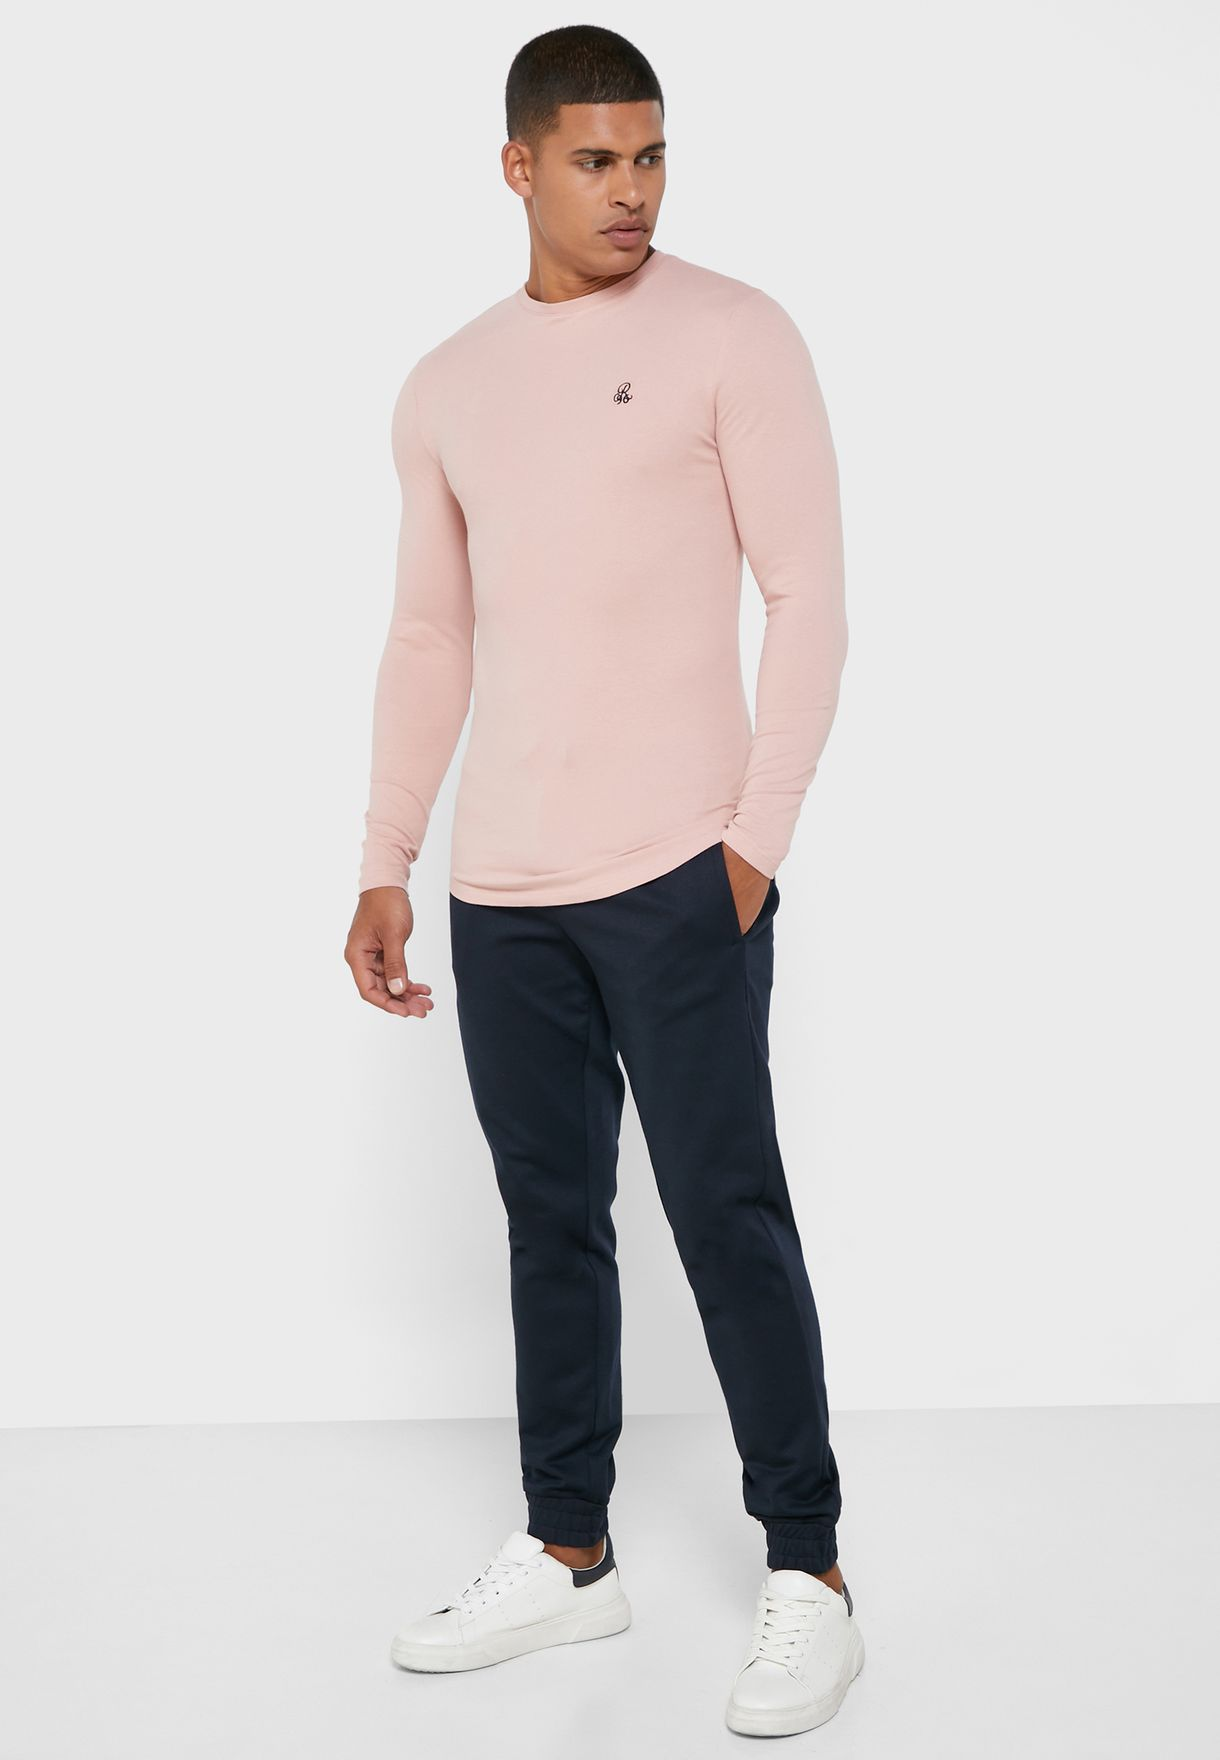 Muscle Fit Crew Neck T-Shirt